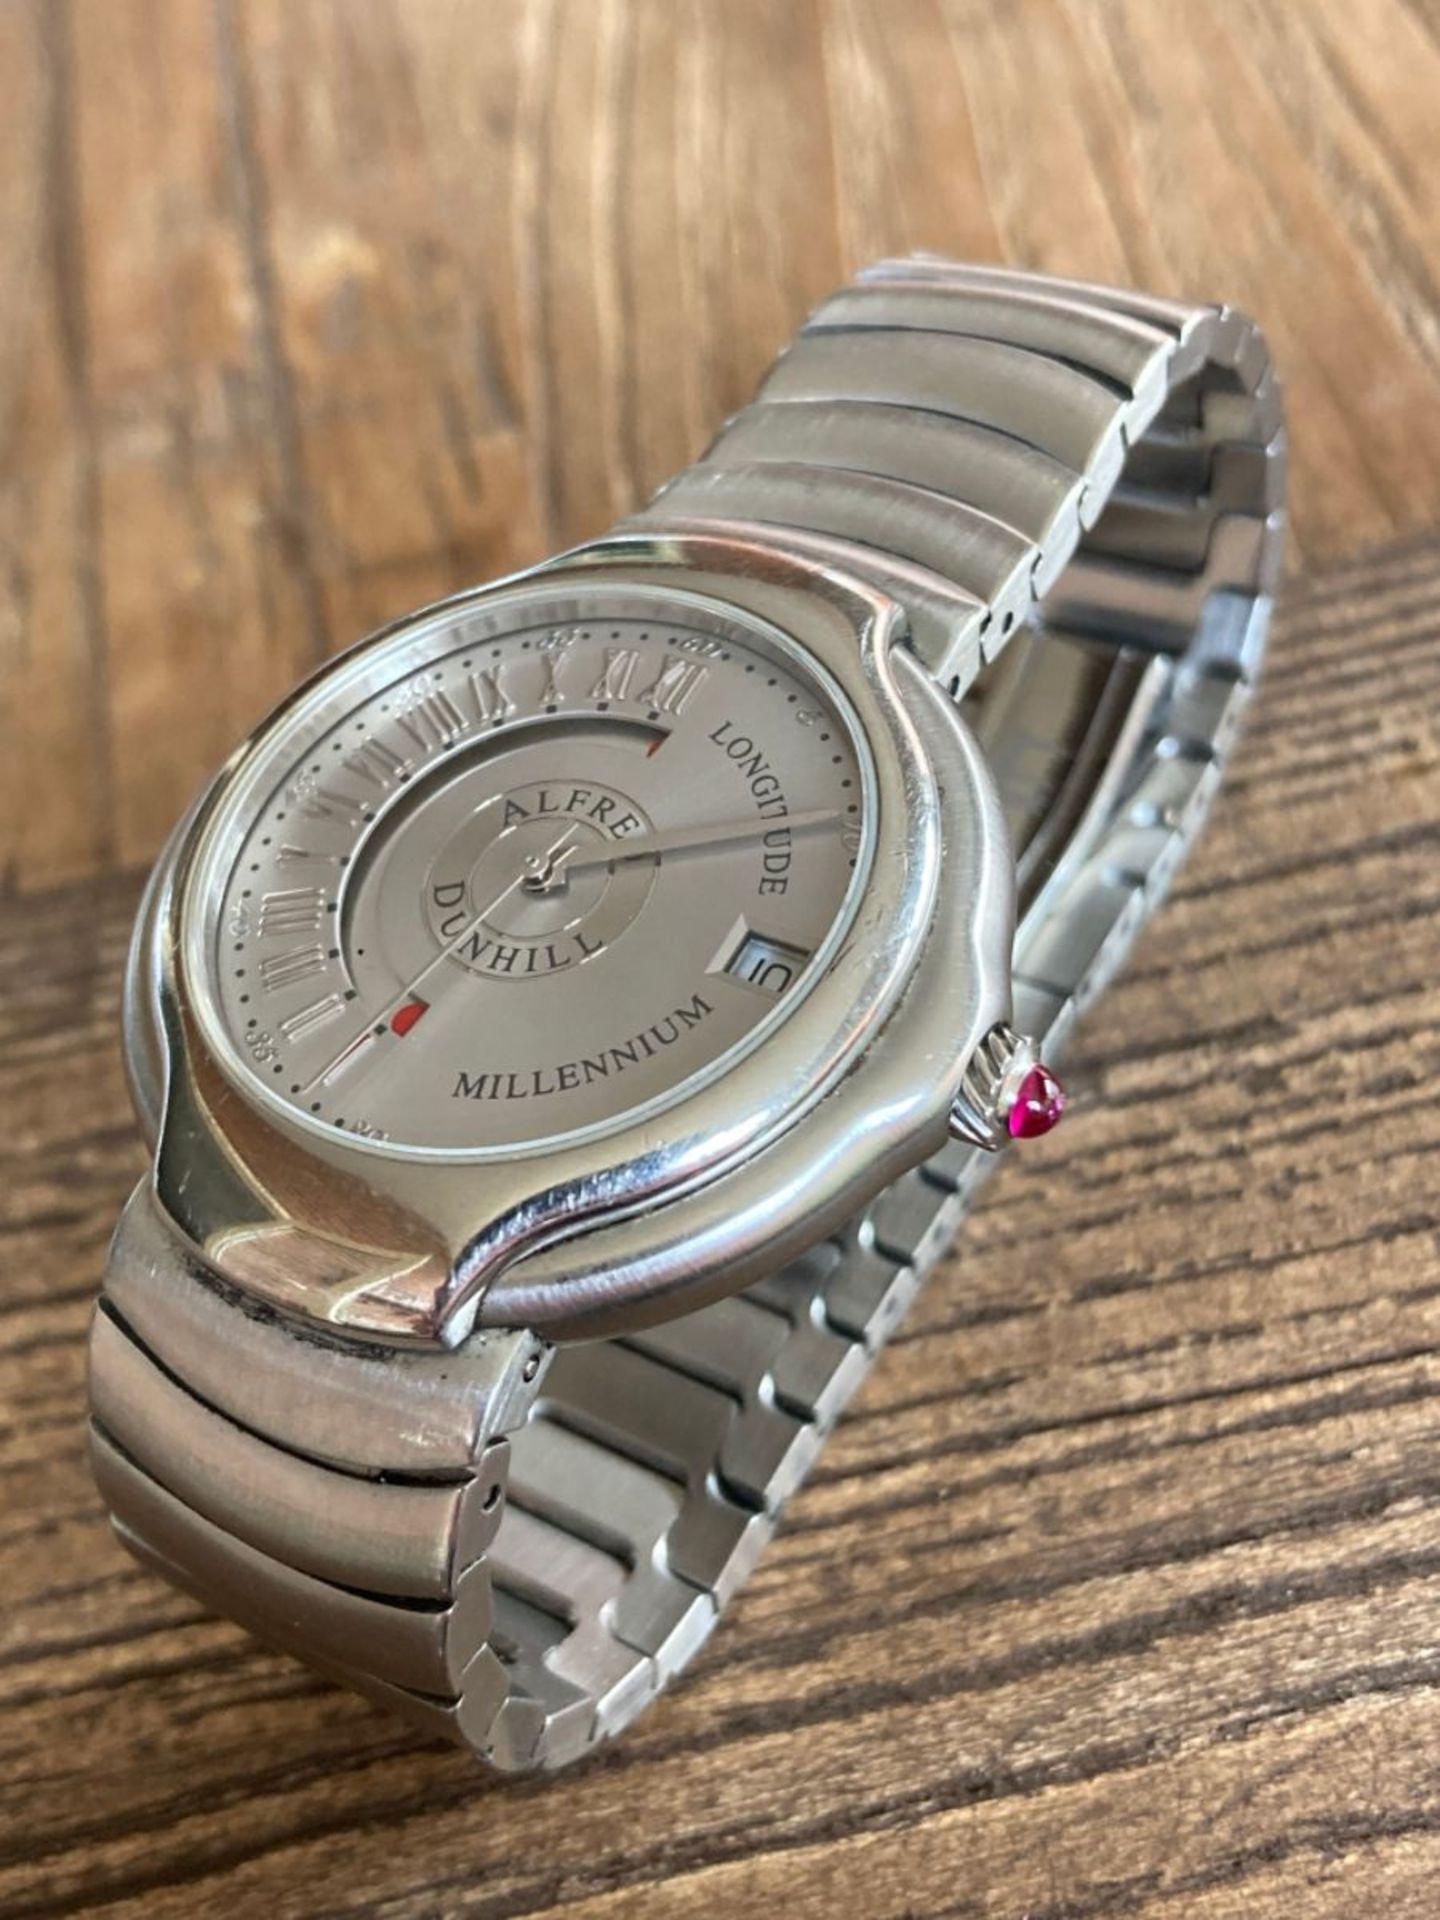 ALFRED DUNHILL WATCH - Image 3 of 6